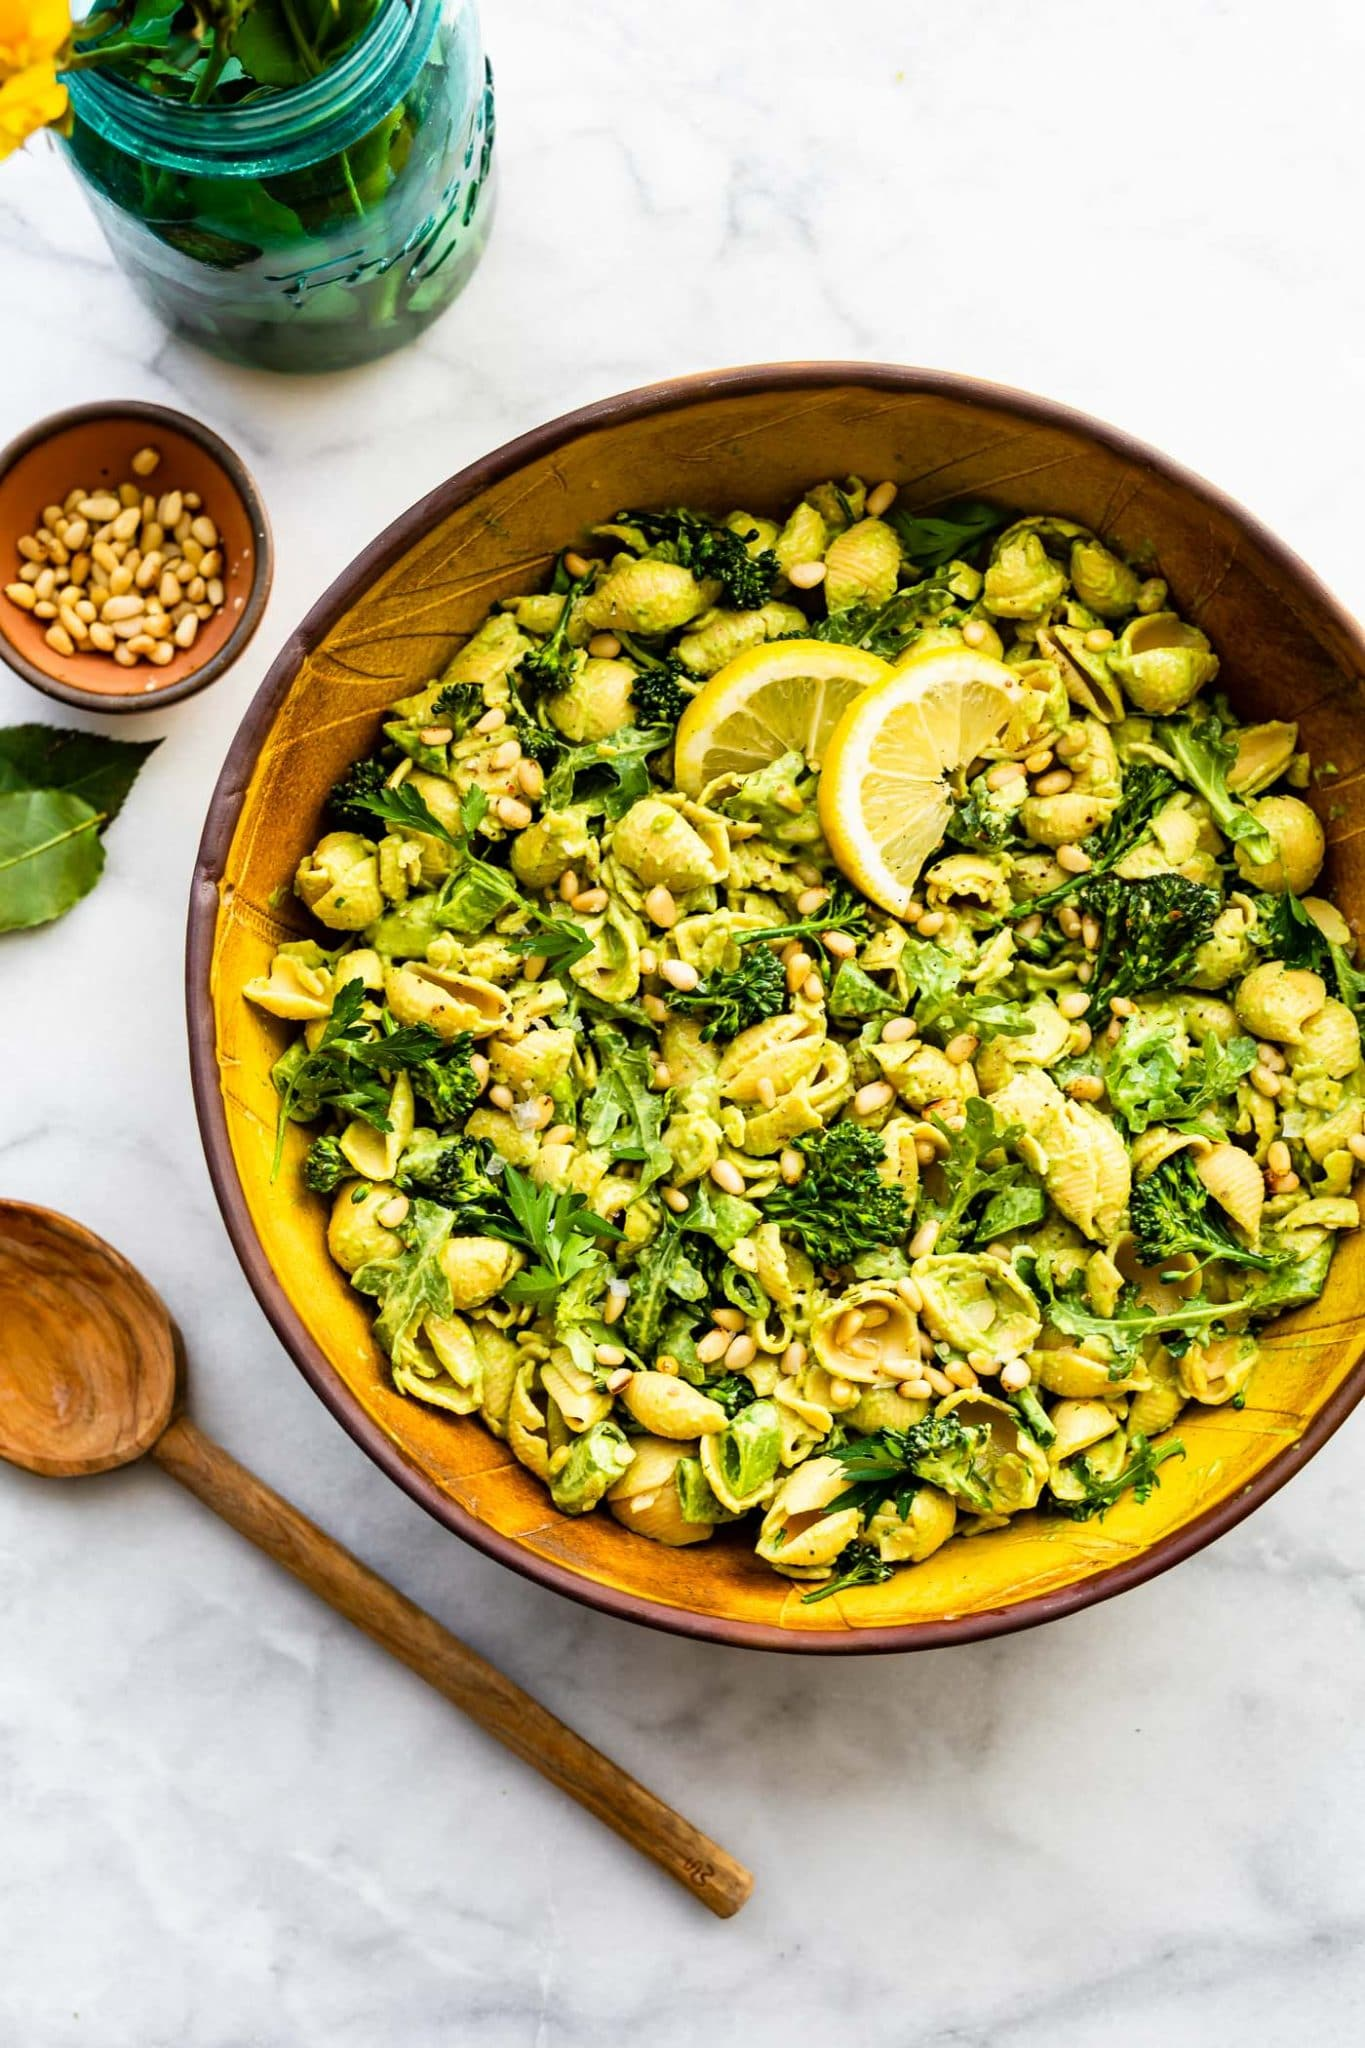 Overhead image of vegan green goddess pasta salad with spoon and flowers.